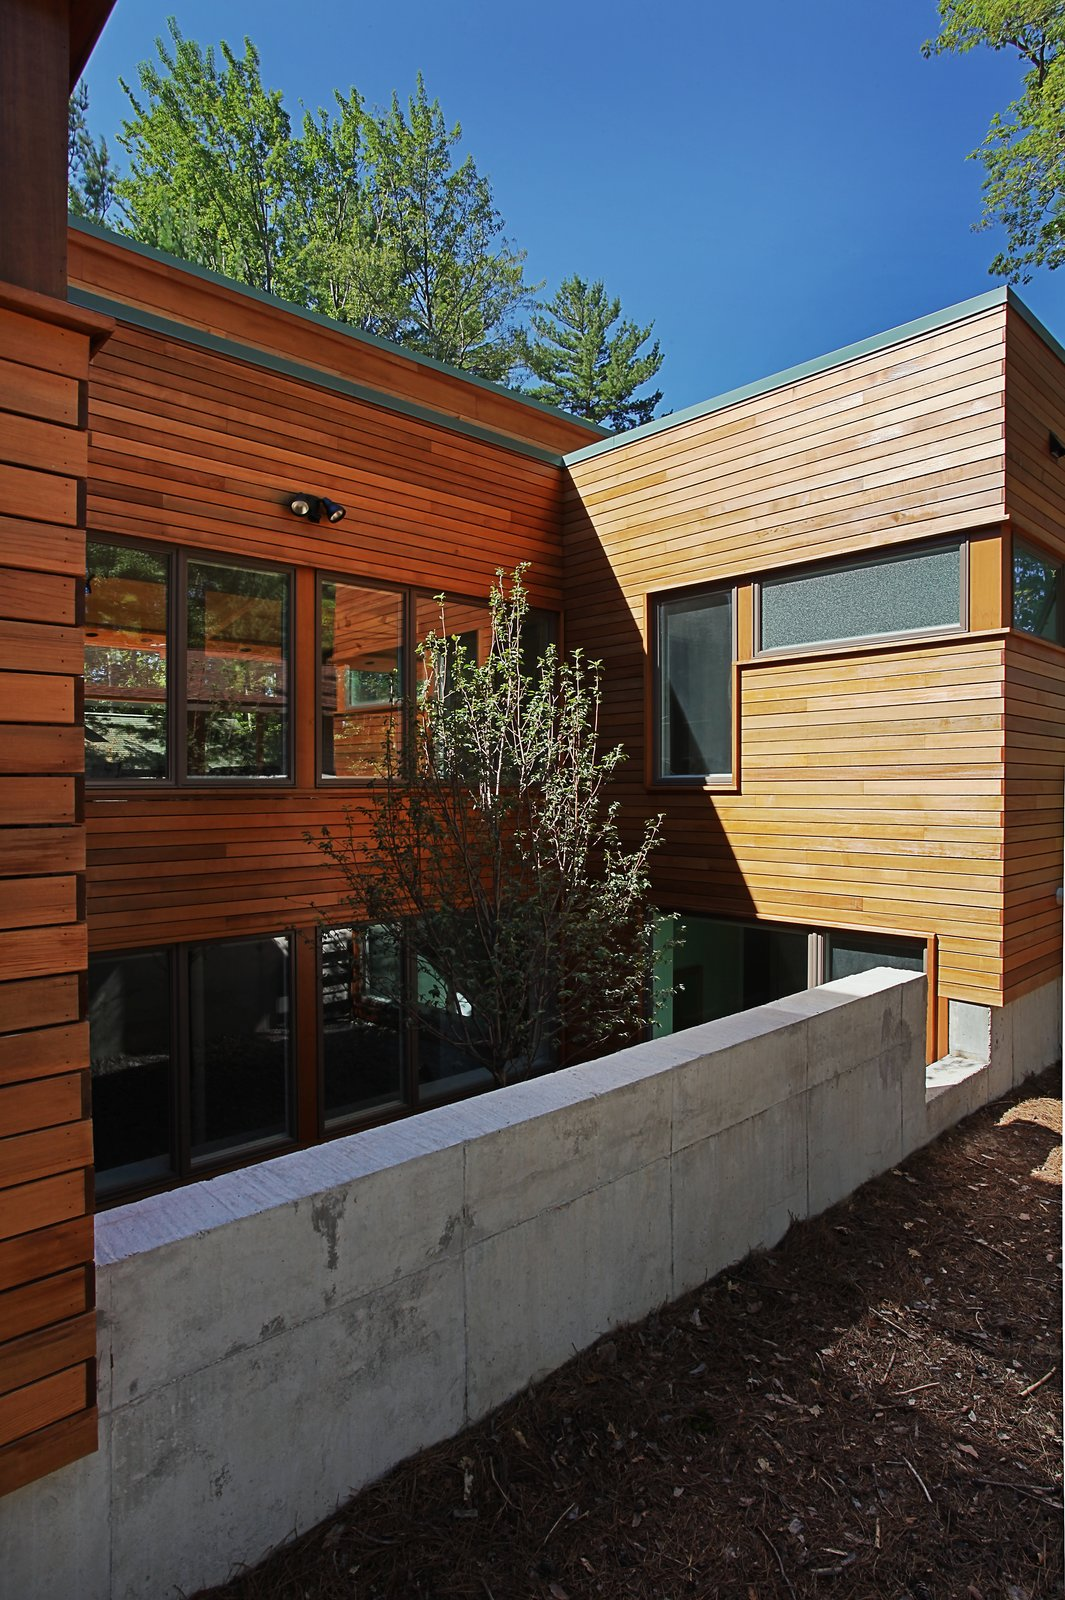 Rear courtyard with tree and basement bedroom windows  Higgins Lake House by Jeff Jordan Architects